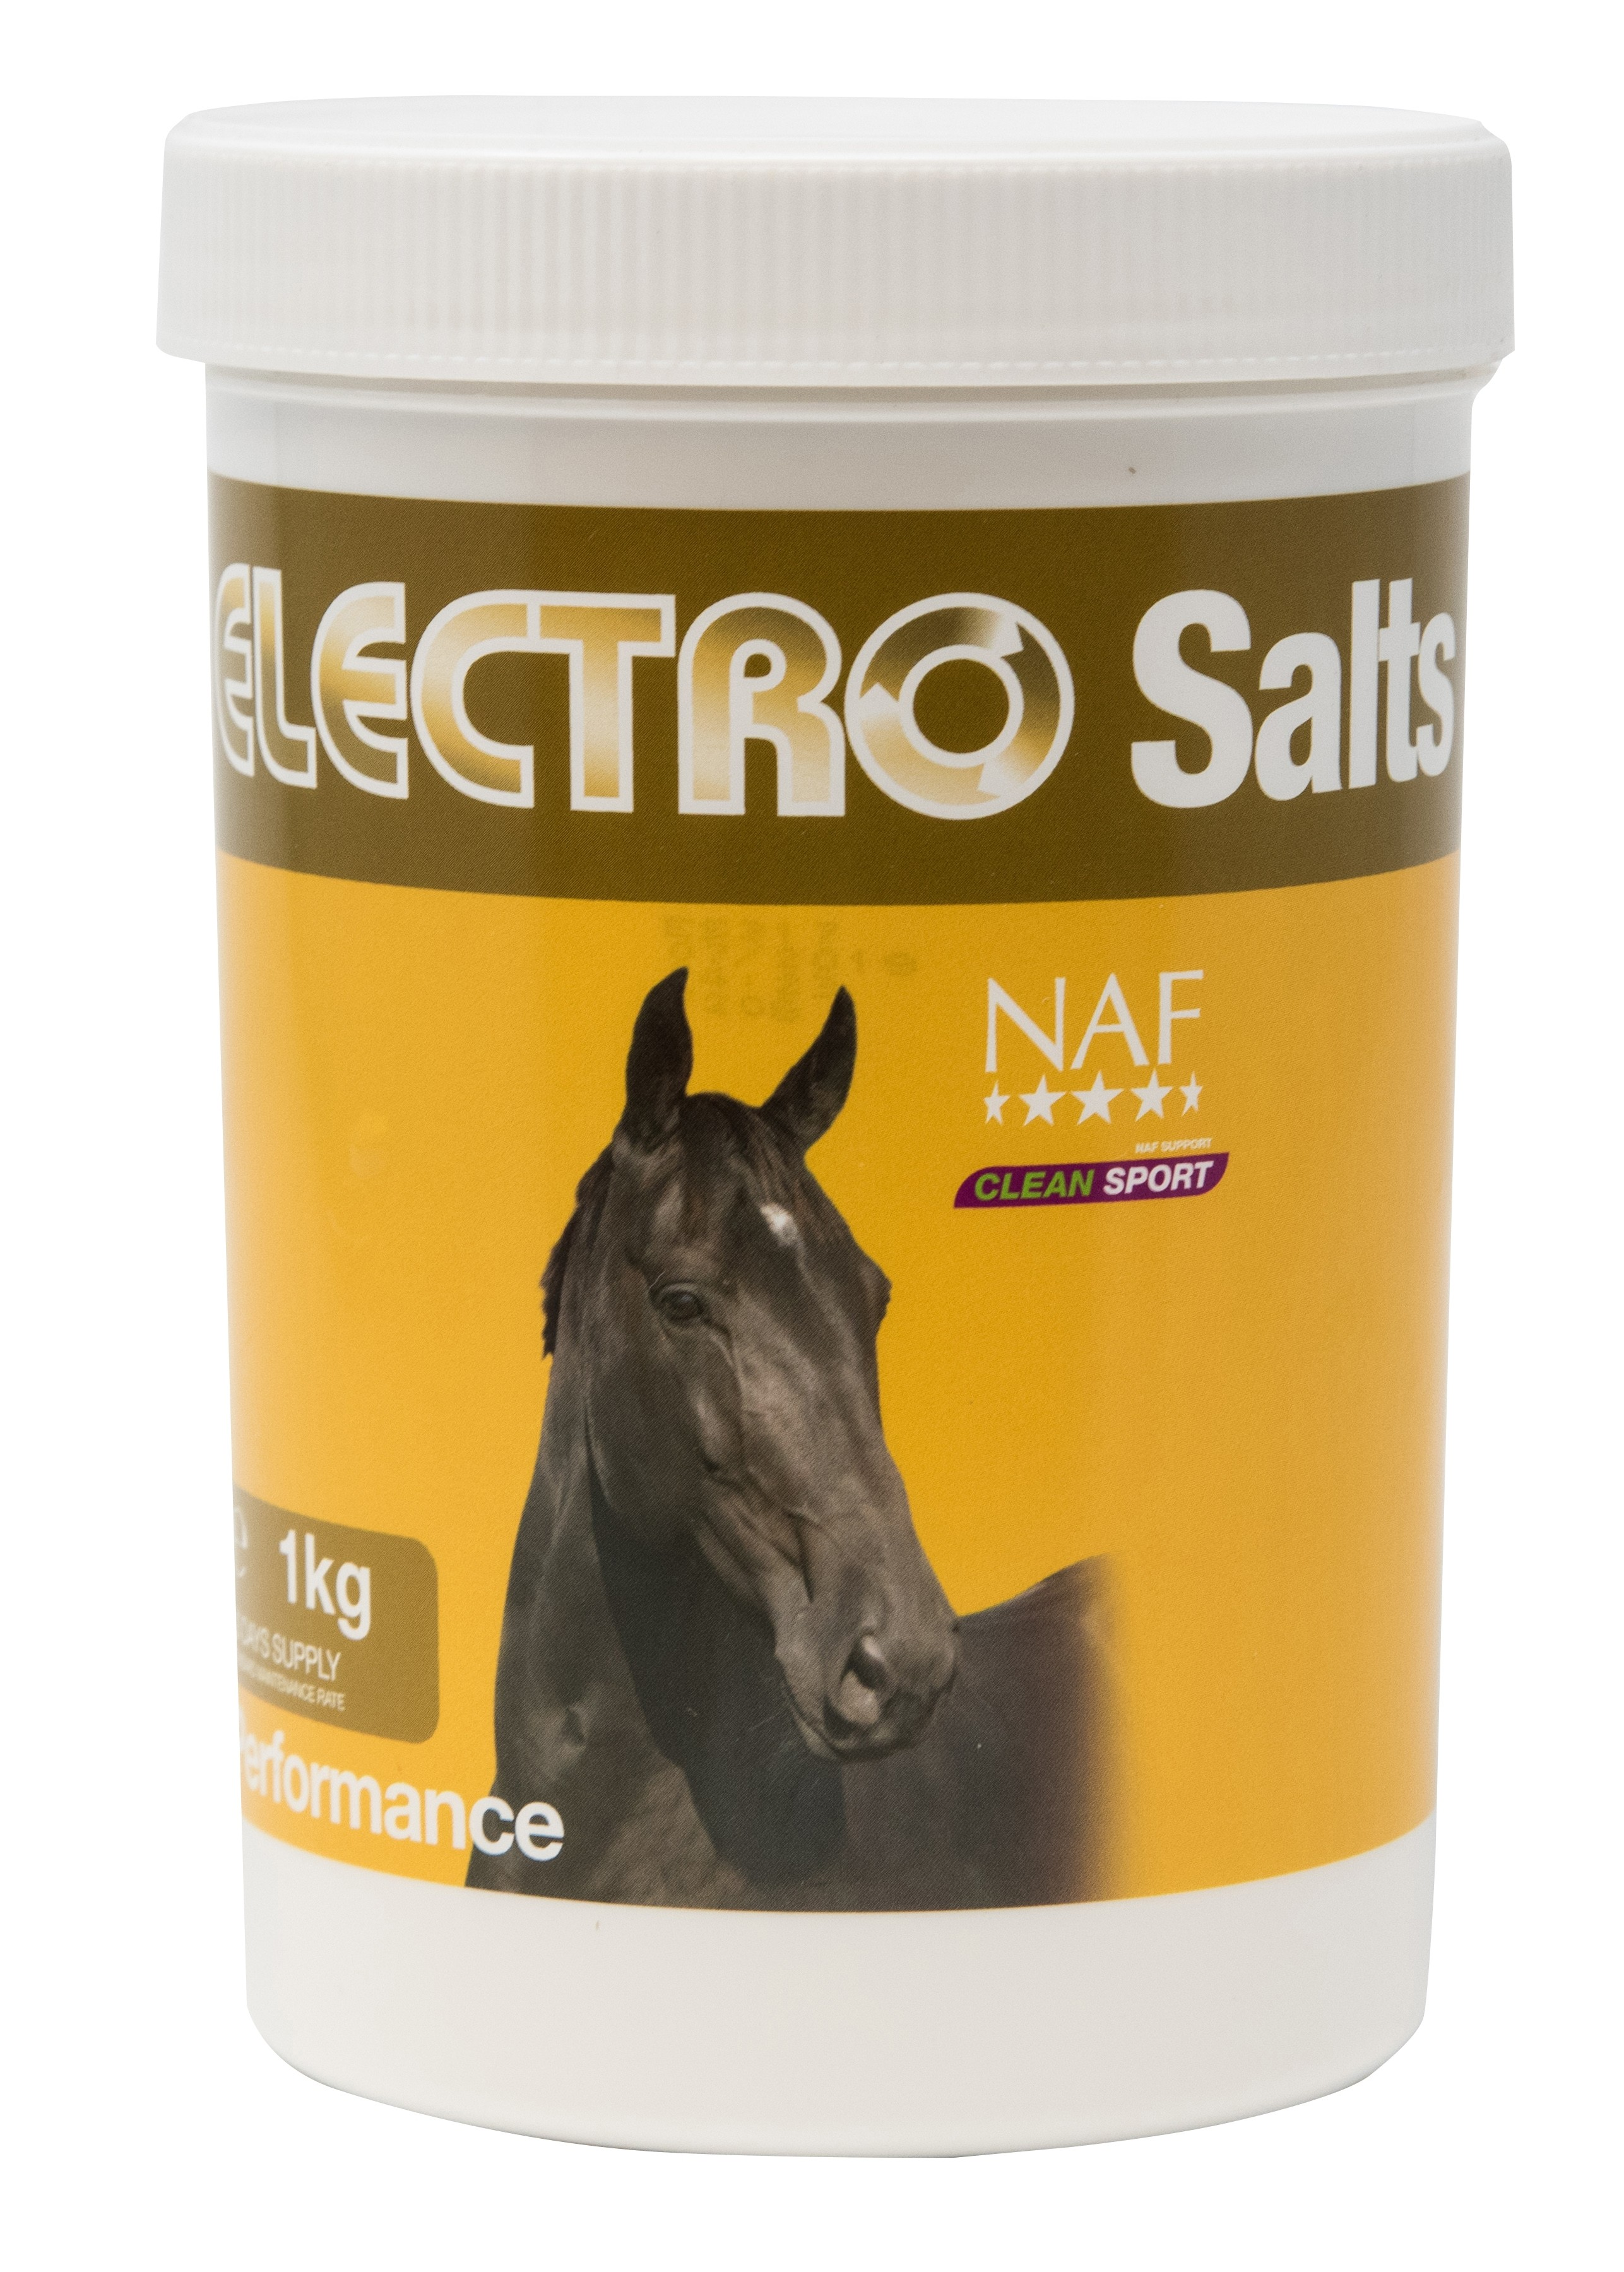 NAF Electro Salts  - Thomas Irving's equestrian and accessories store  NAF Electro Salts